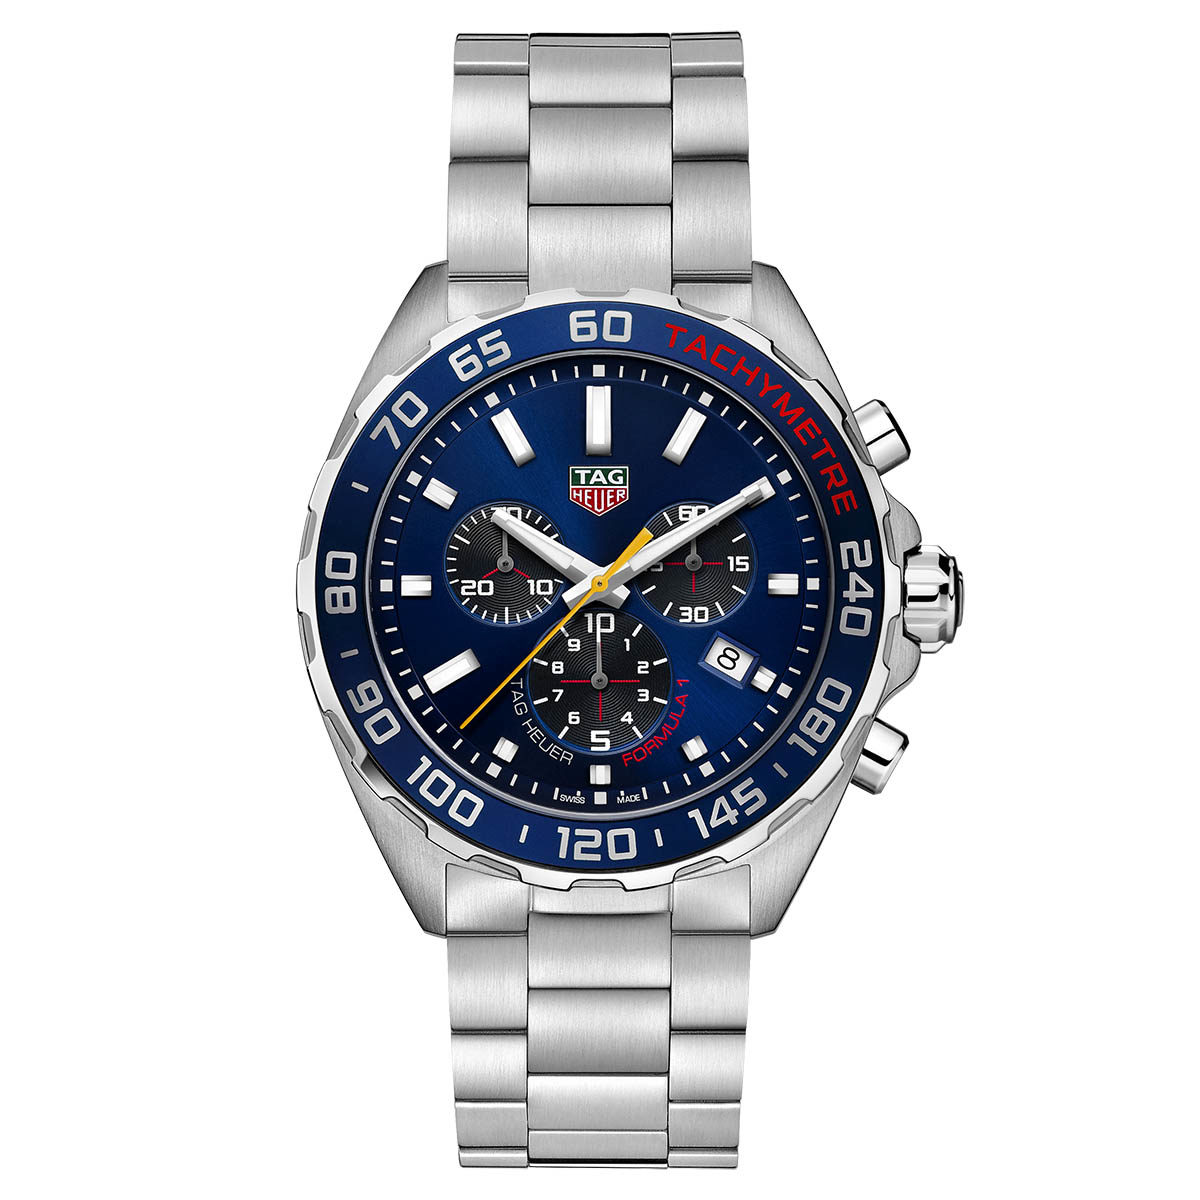 TAG Heuer Formula 1 Aston Martin Red Bull Racing Special